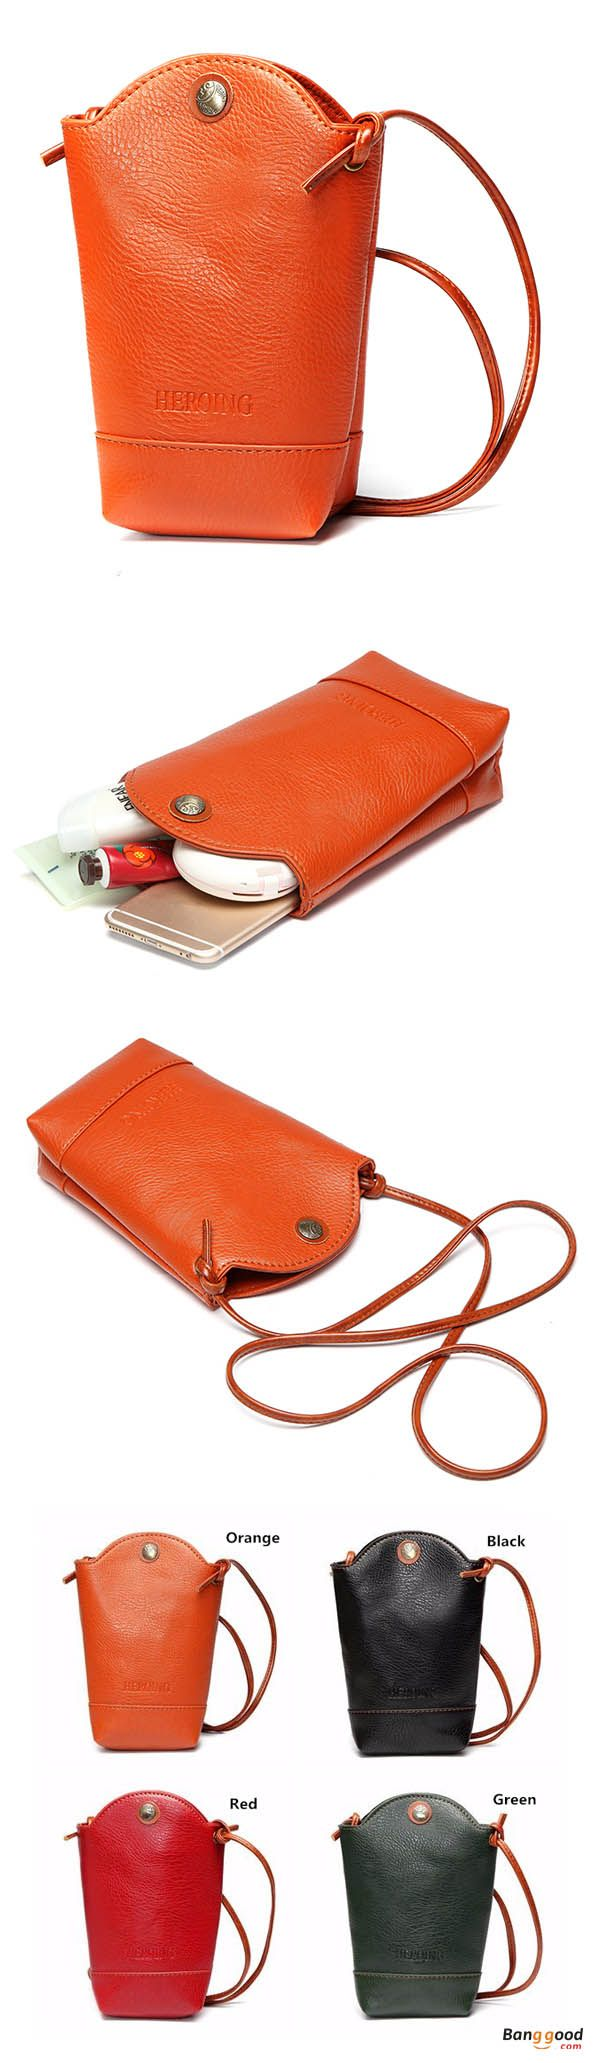 US$10.99+Free shipping. Women's Wallet, Phone Wallets, Card Holder, Coin Bags, Long Purse. Waxy, Ultrathin, Leather, Color: Black, Red, Green, OrangeGreen, Orange, Rose Red.